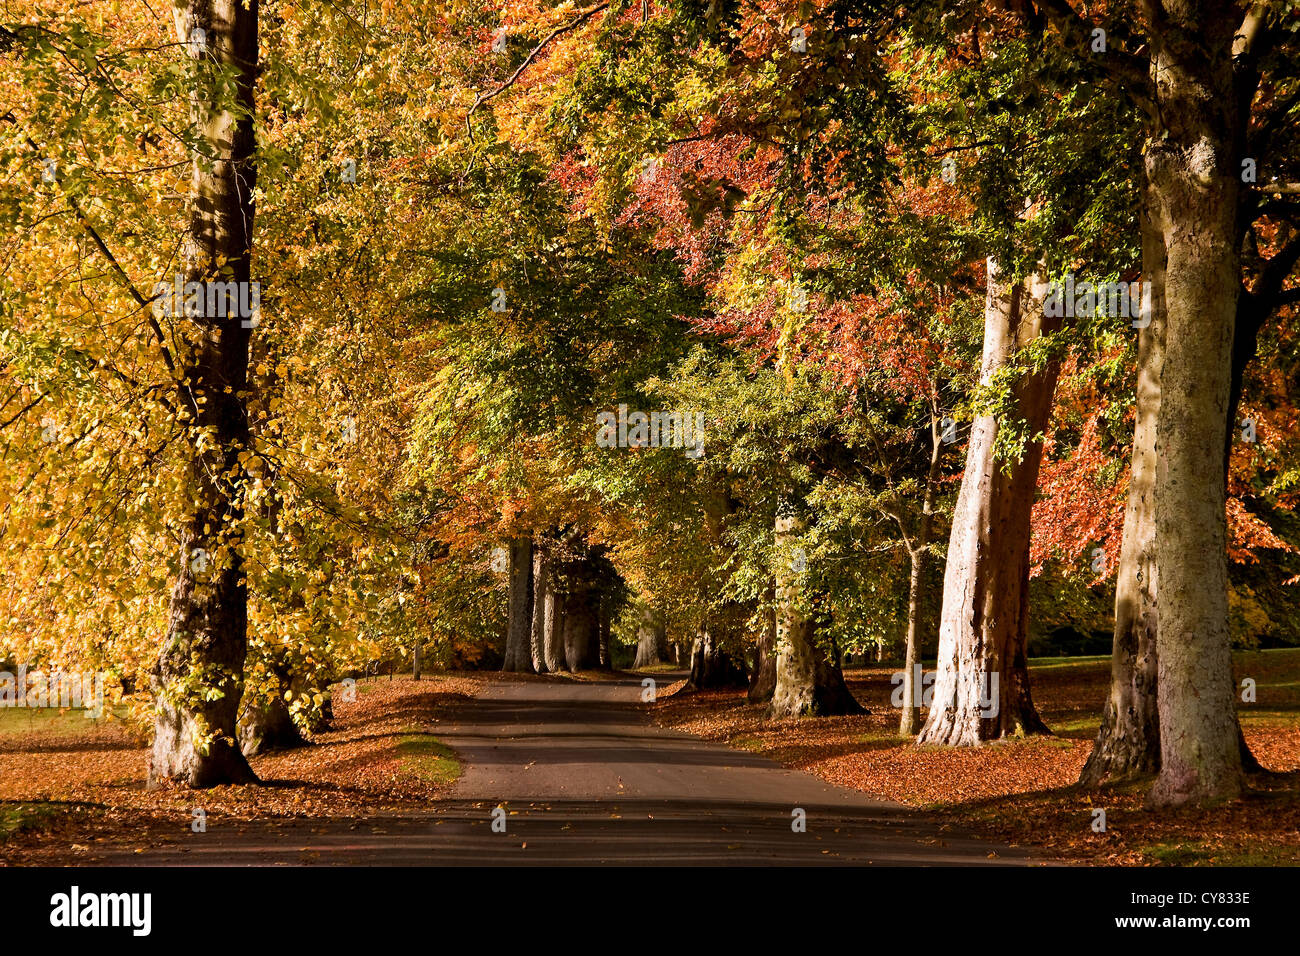 Avenue of trees with Autumn colours at the Camperdown country park in Dundee,UK Stock Photo